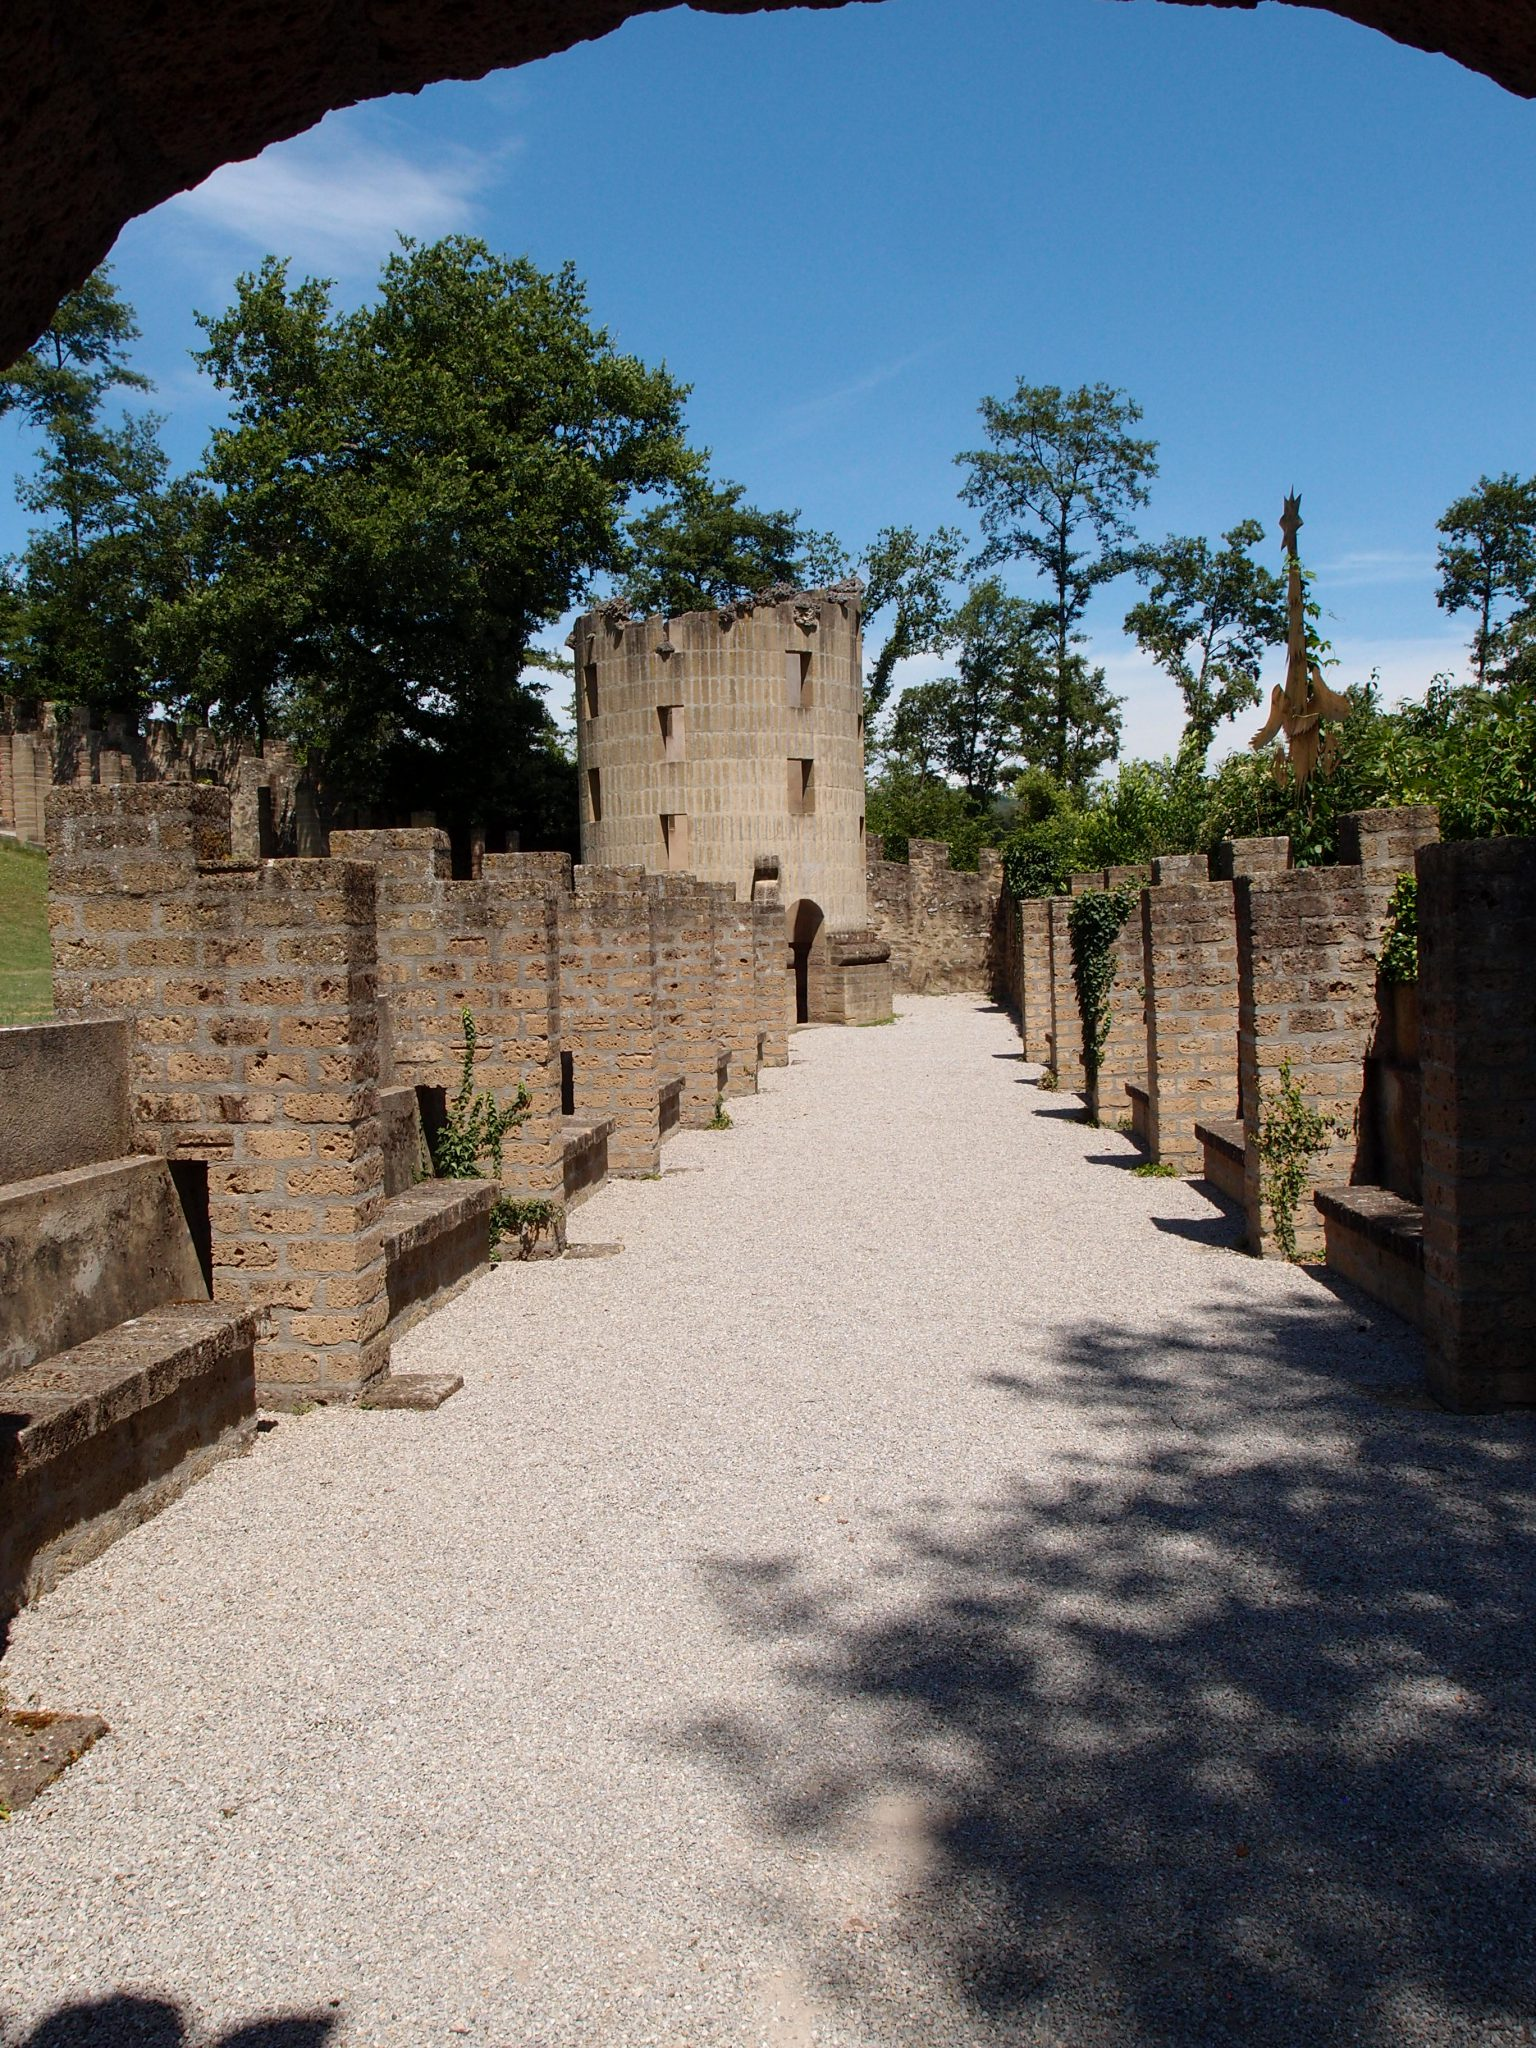 At the end of this trench is Buzzi's interpretation of the famous Ruined Column which is part of Desert de Retz, an exotic landscape garden, in Chambourcy, France.